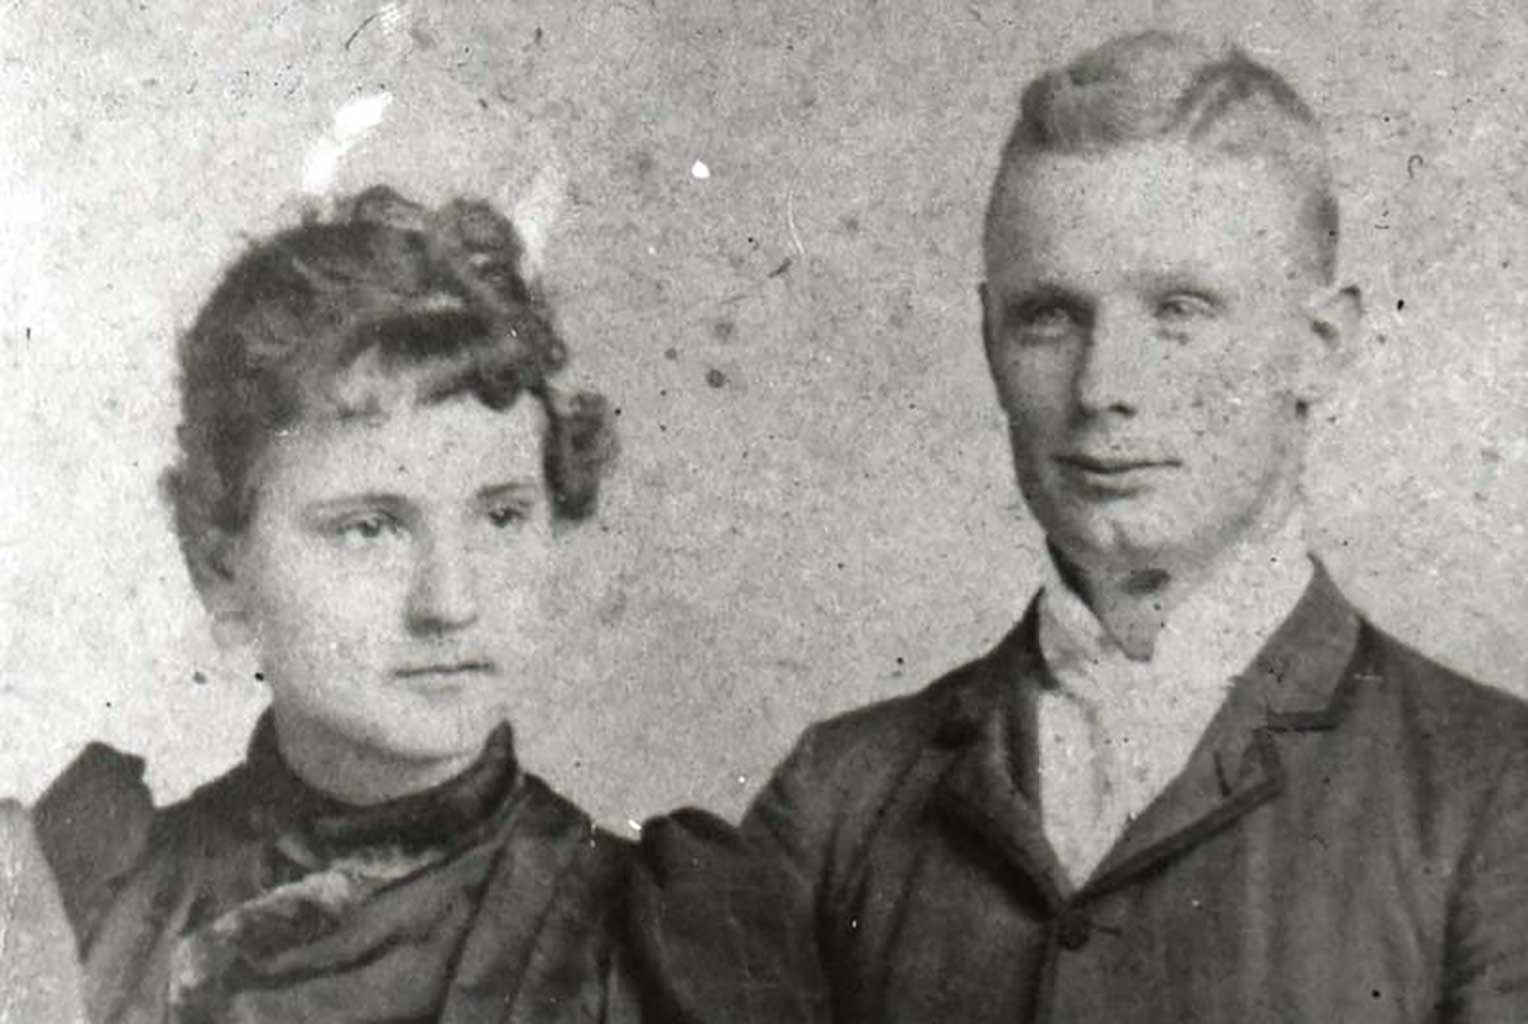 sarah-corbell-and-brother-lawrence-circa-1900-children-of-j-d-corbell-img175